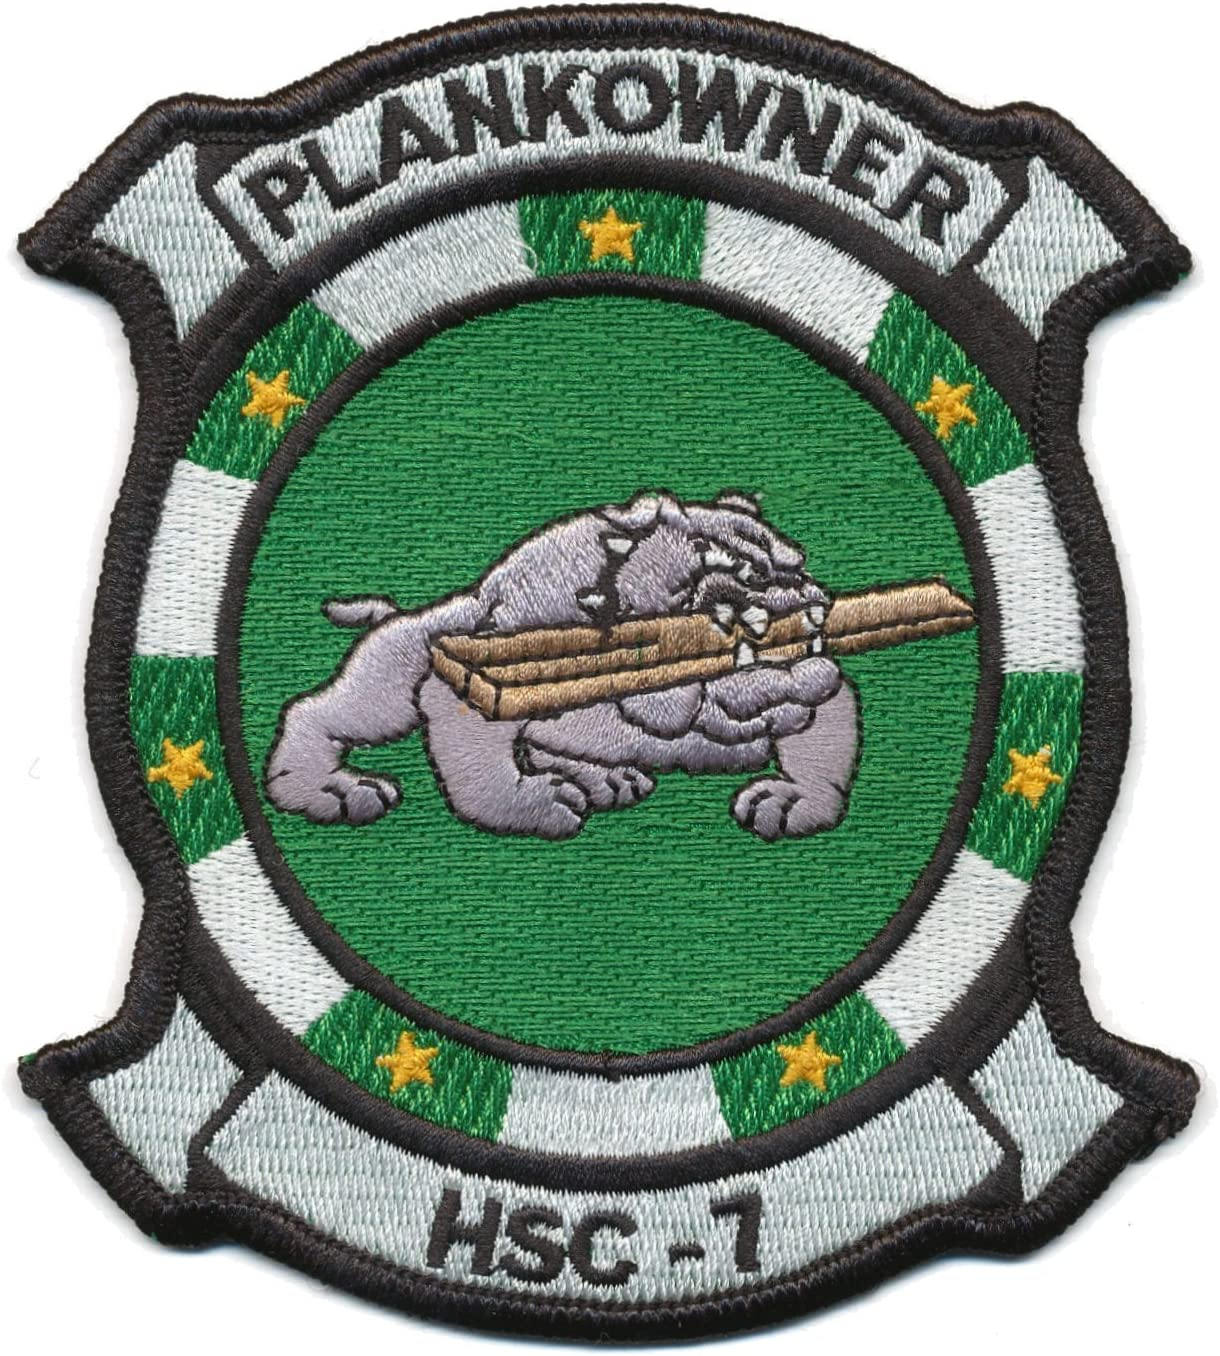 MILITARY PATCH UNITED STATES NAVY PLANKOWNER SEW ON SET OF 2